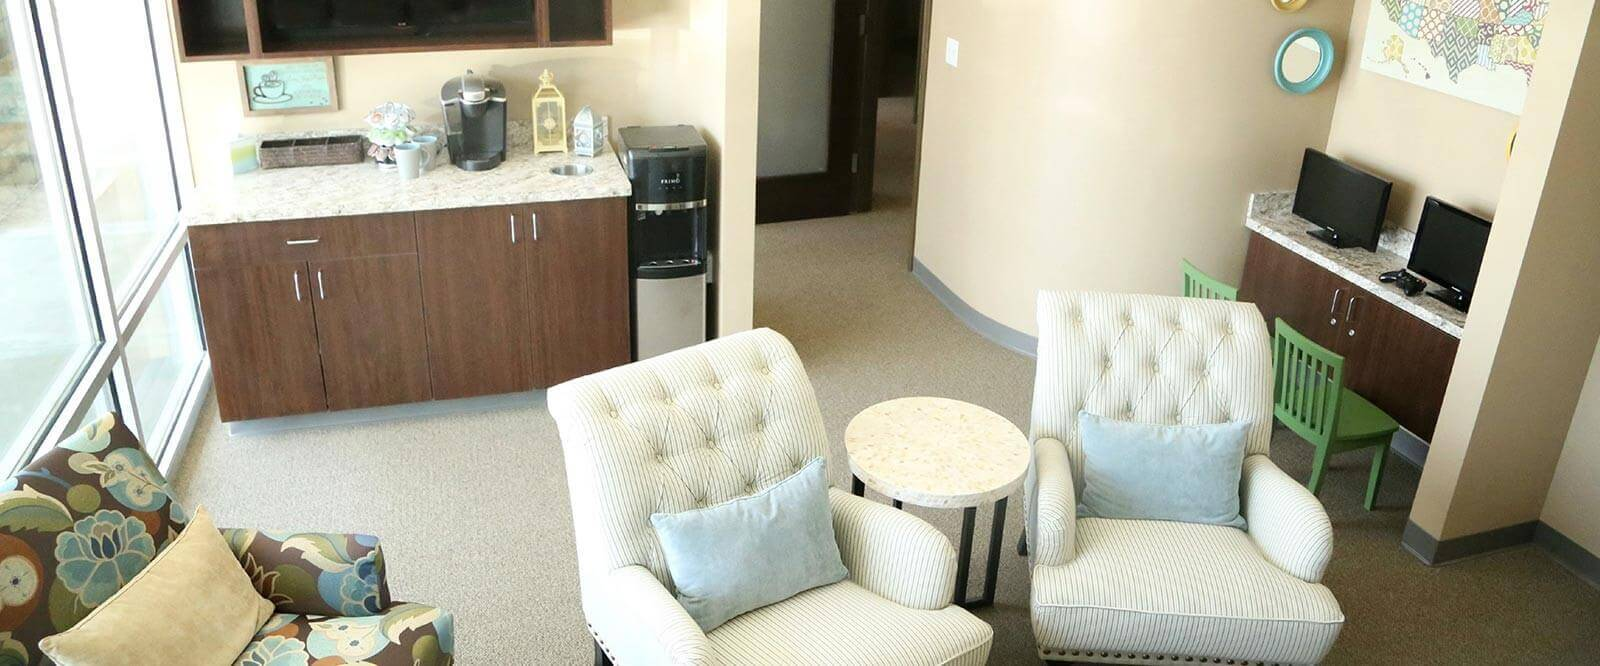 Waiting Room and Beverage Station - Overland Park Family Dental